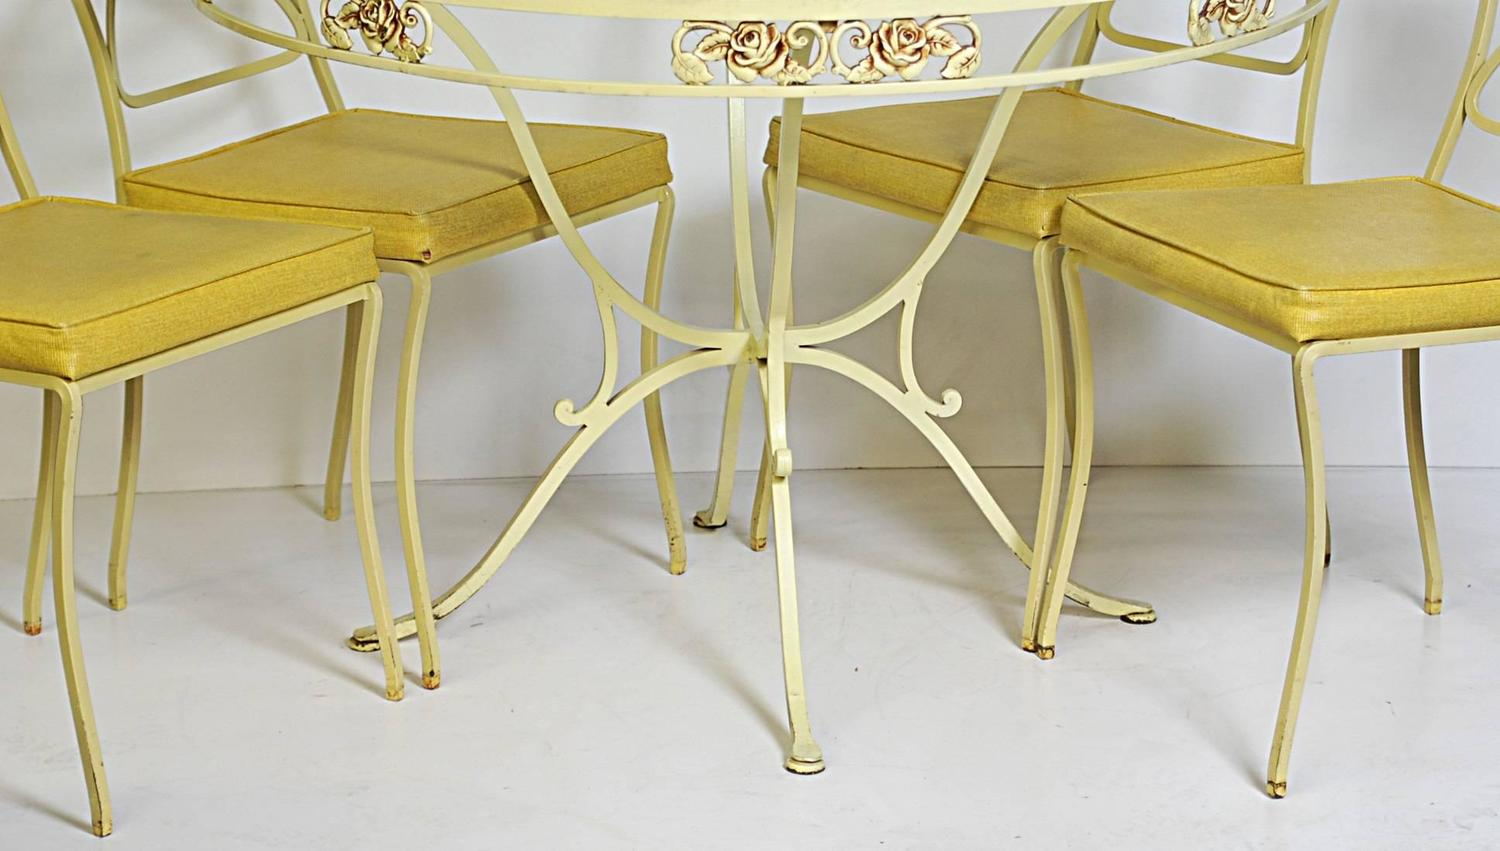 five piece wrought iron dining patio set yellow painted with a floral